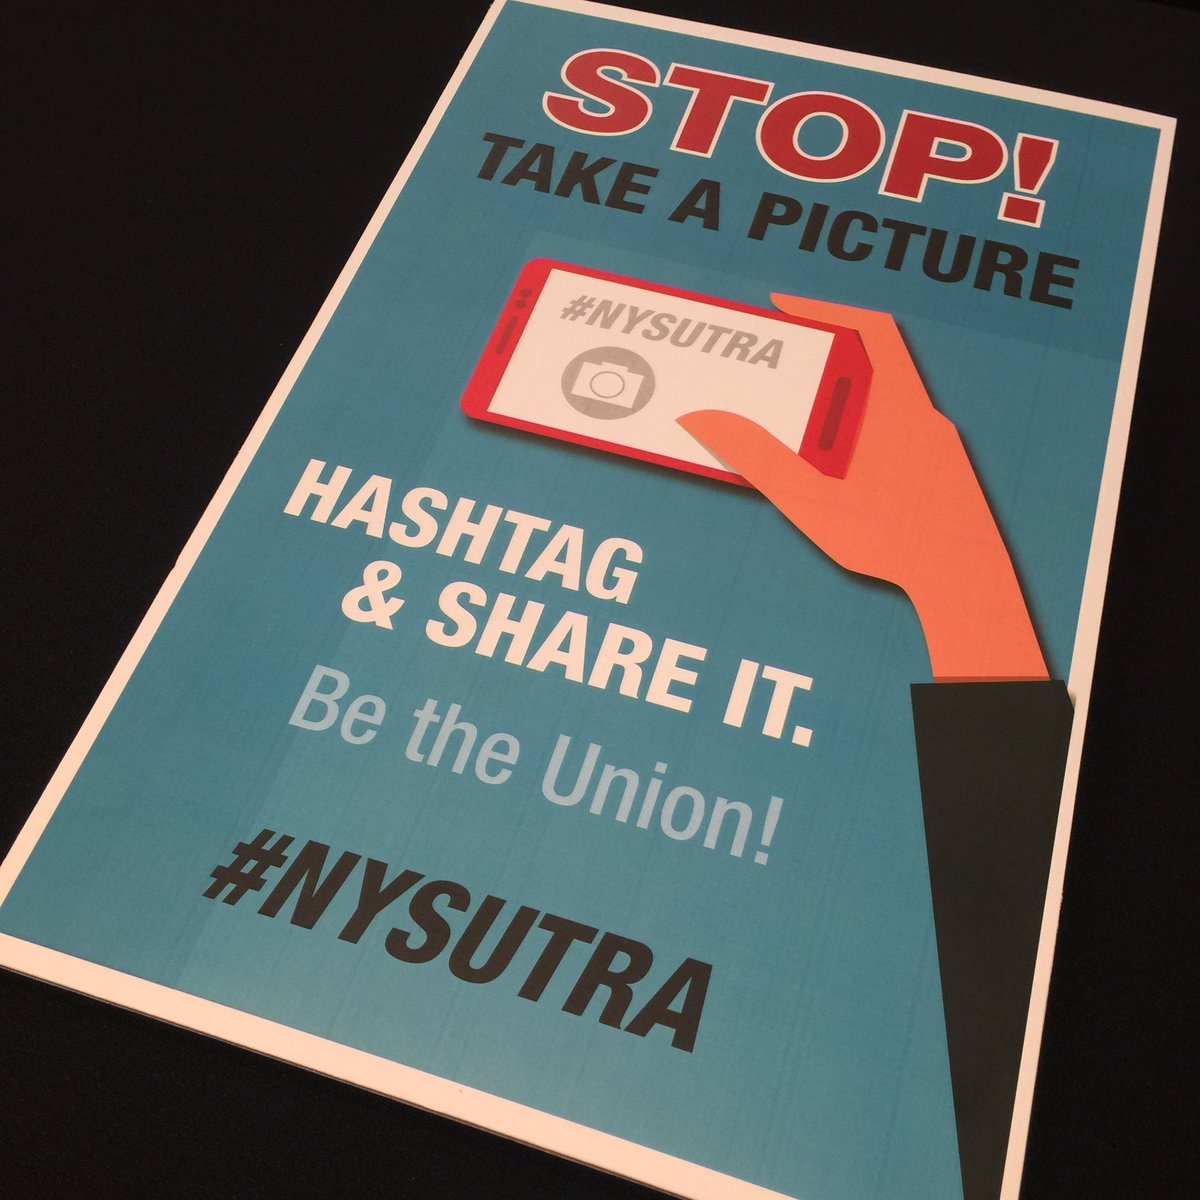 Welcome to Rochester! Opening session for the #NYSUTRA is 2 p.m. Remember to use the hashtag! https://t.co/l5uct9TdVl